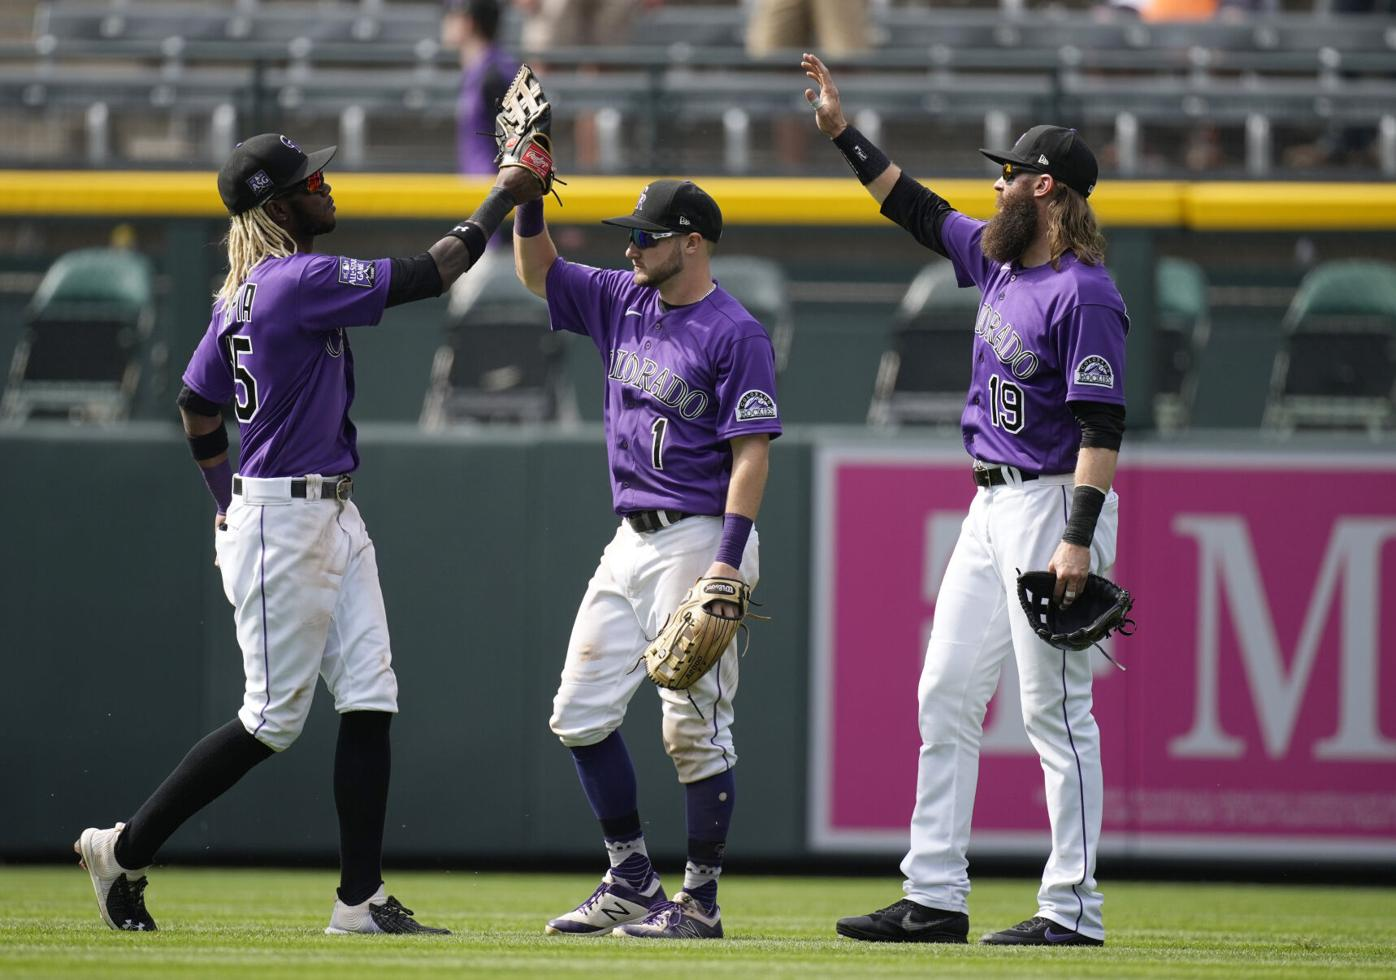 Pirates Rockies Baseball outfielders